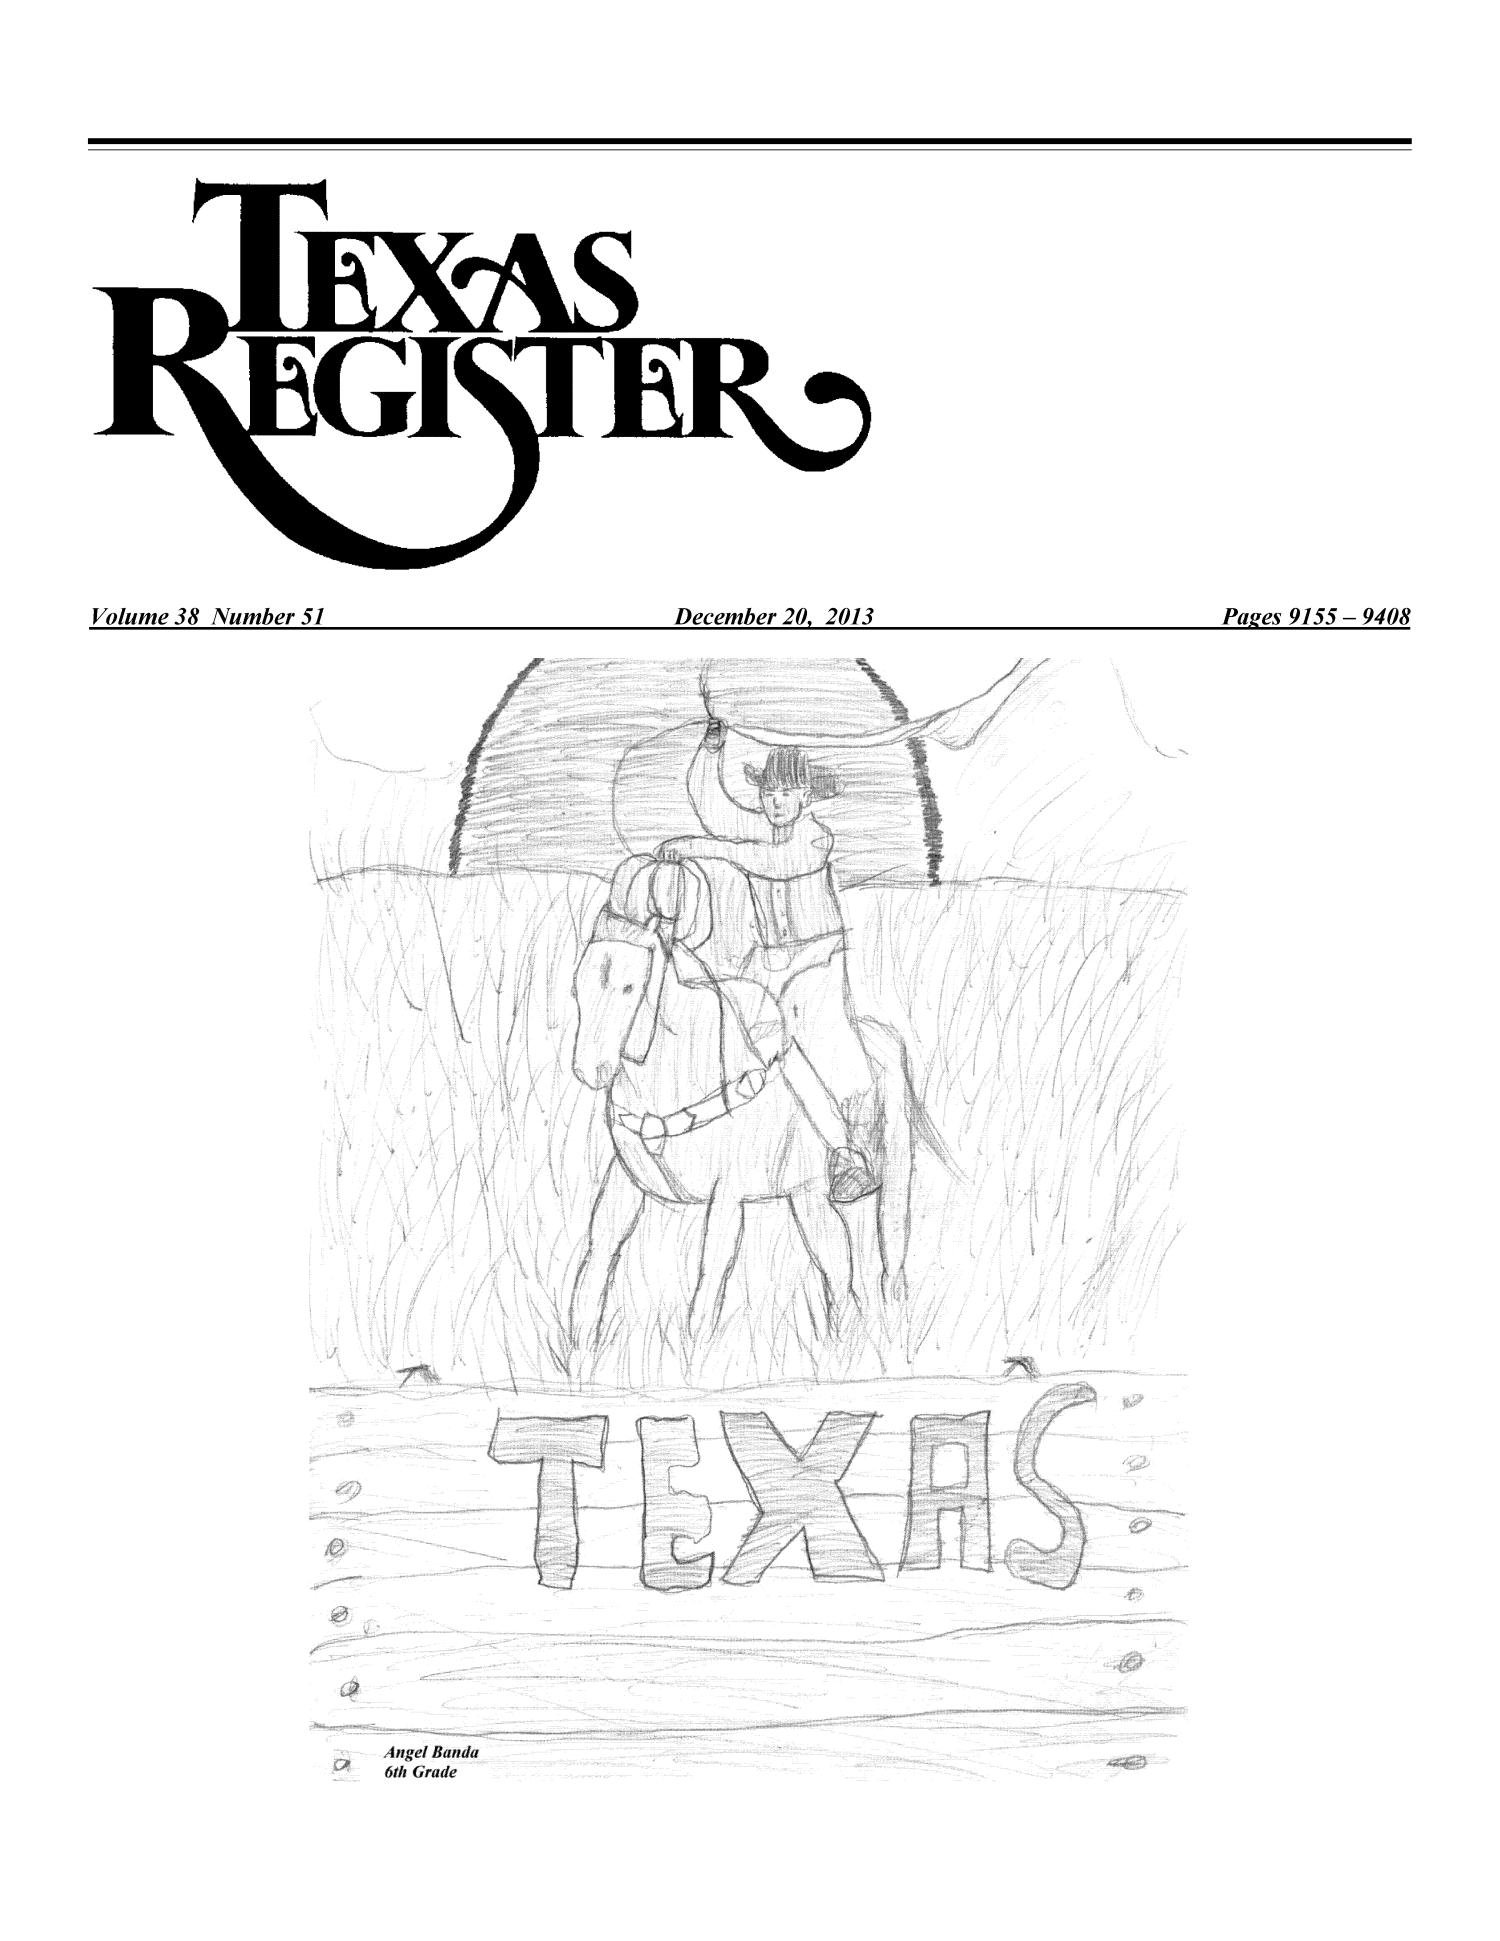 Texas Register, Volume 38, Number 51, Pages 9155-9408, December 20, 2013                                                                                                      Title Page